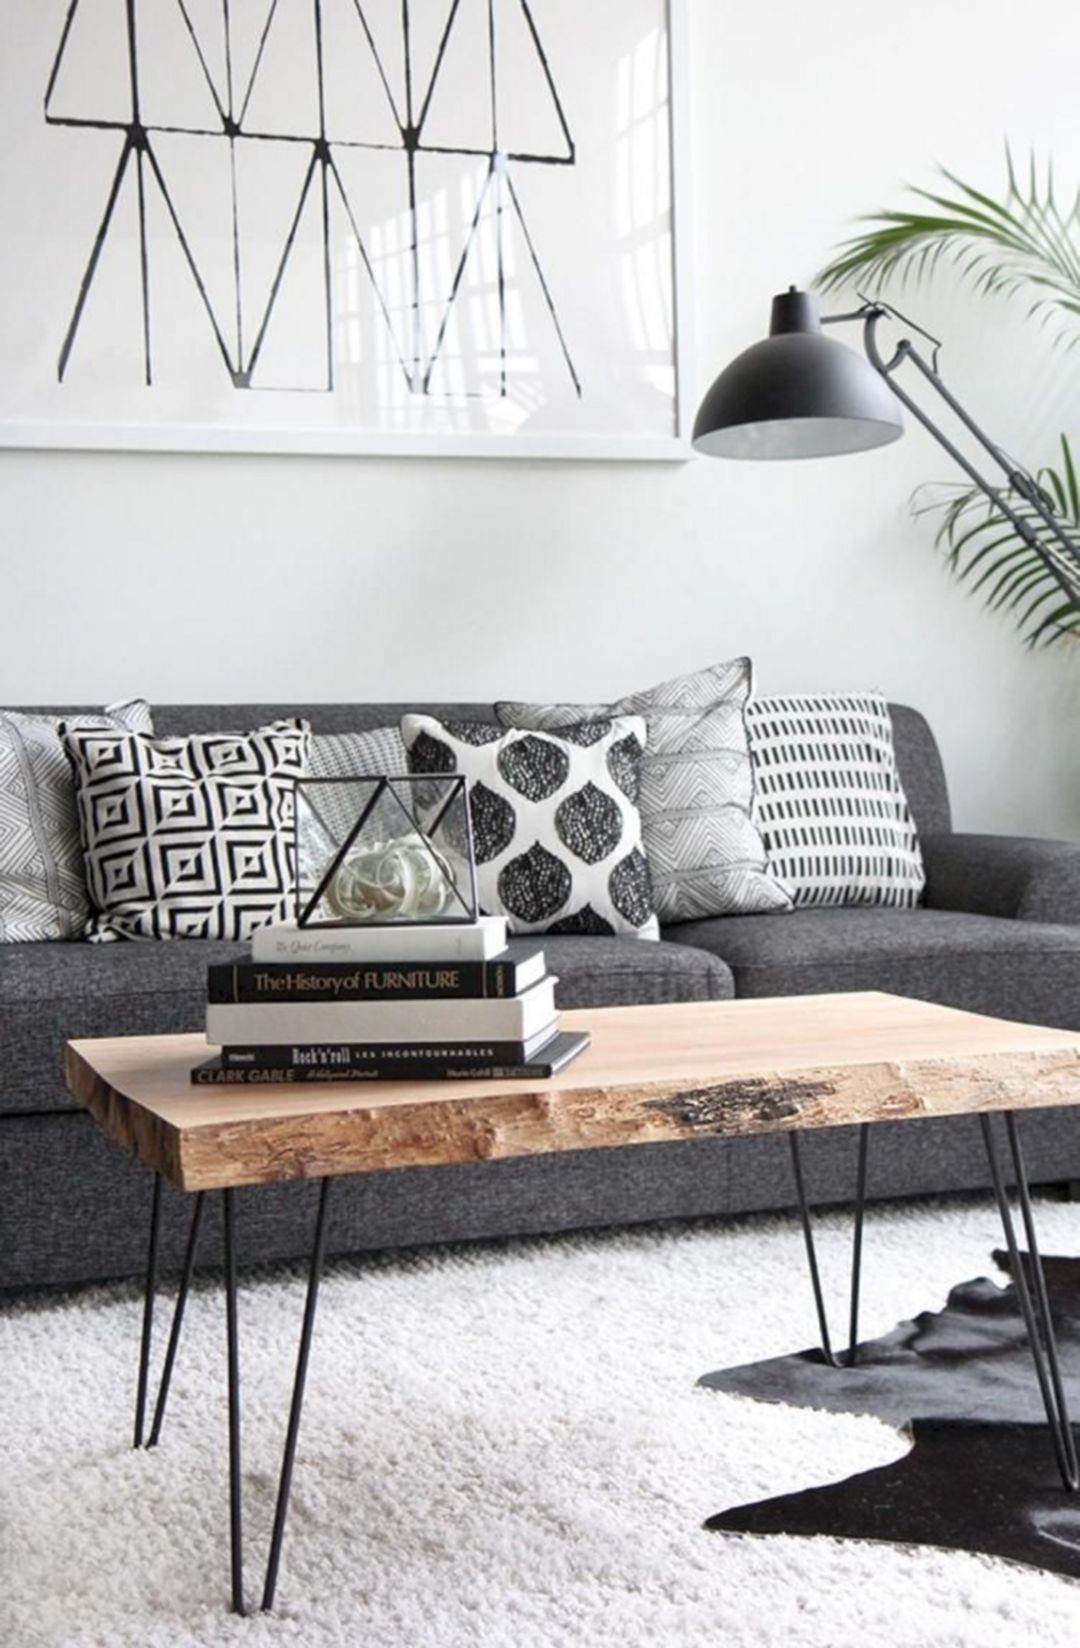 15 Best Decor Ideas For Your Small Living Room Apartment images